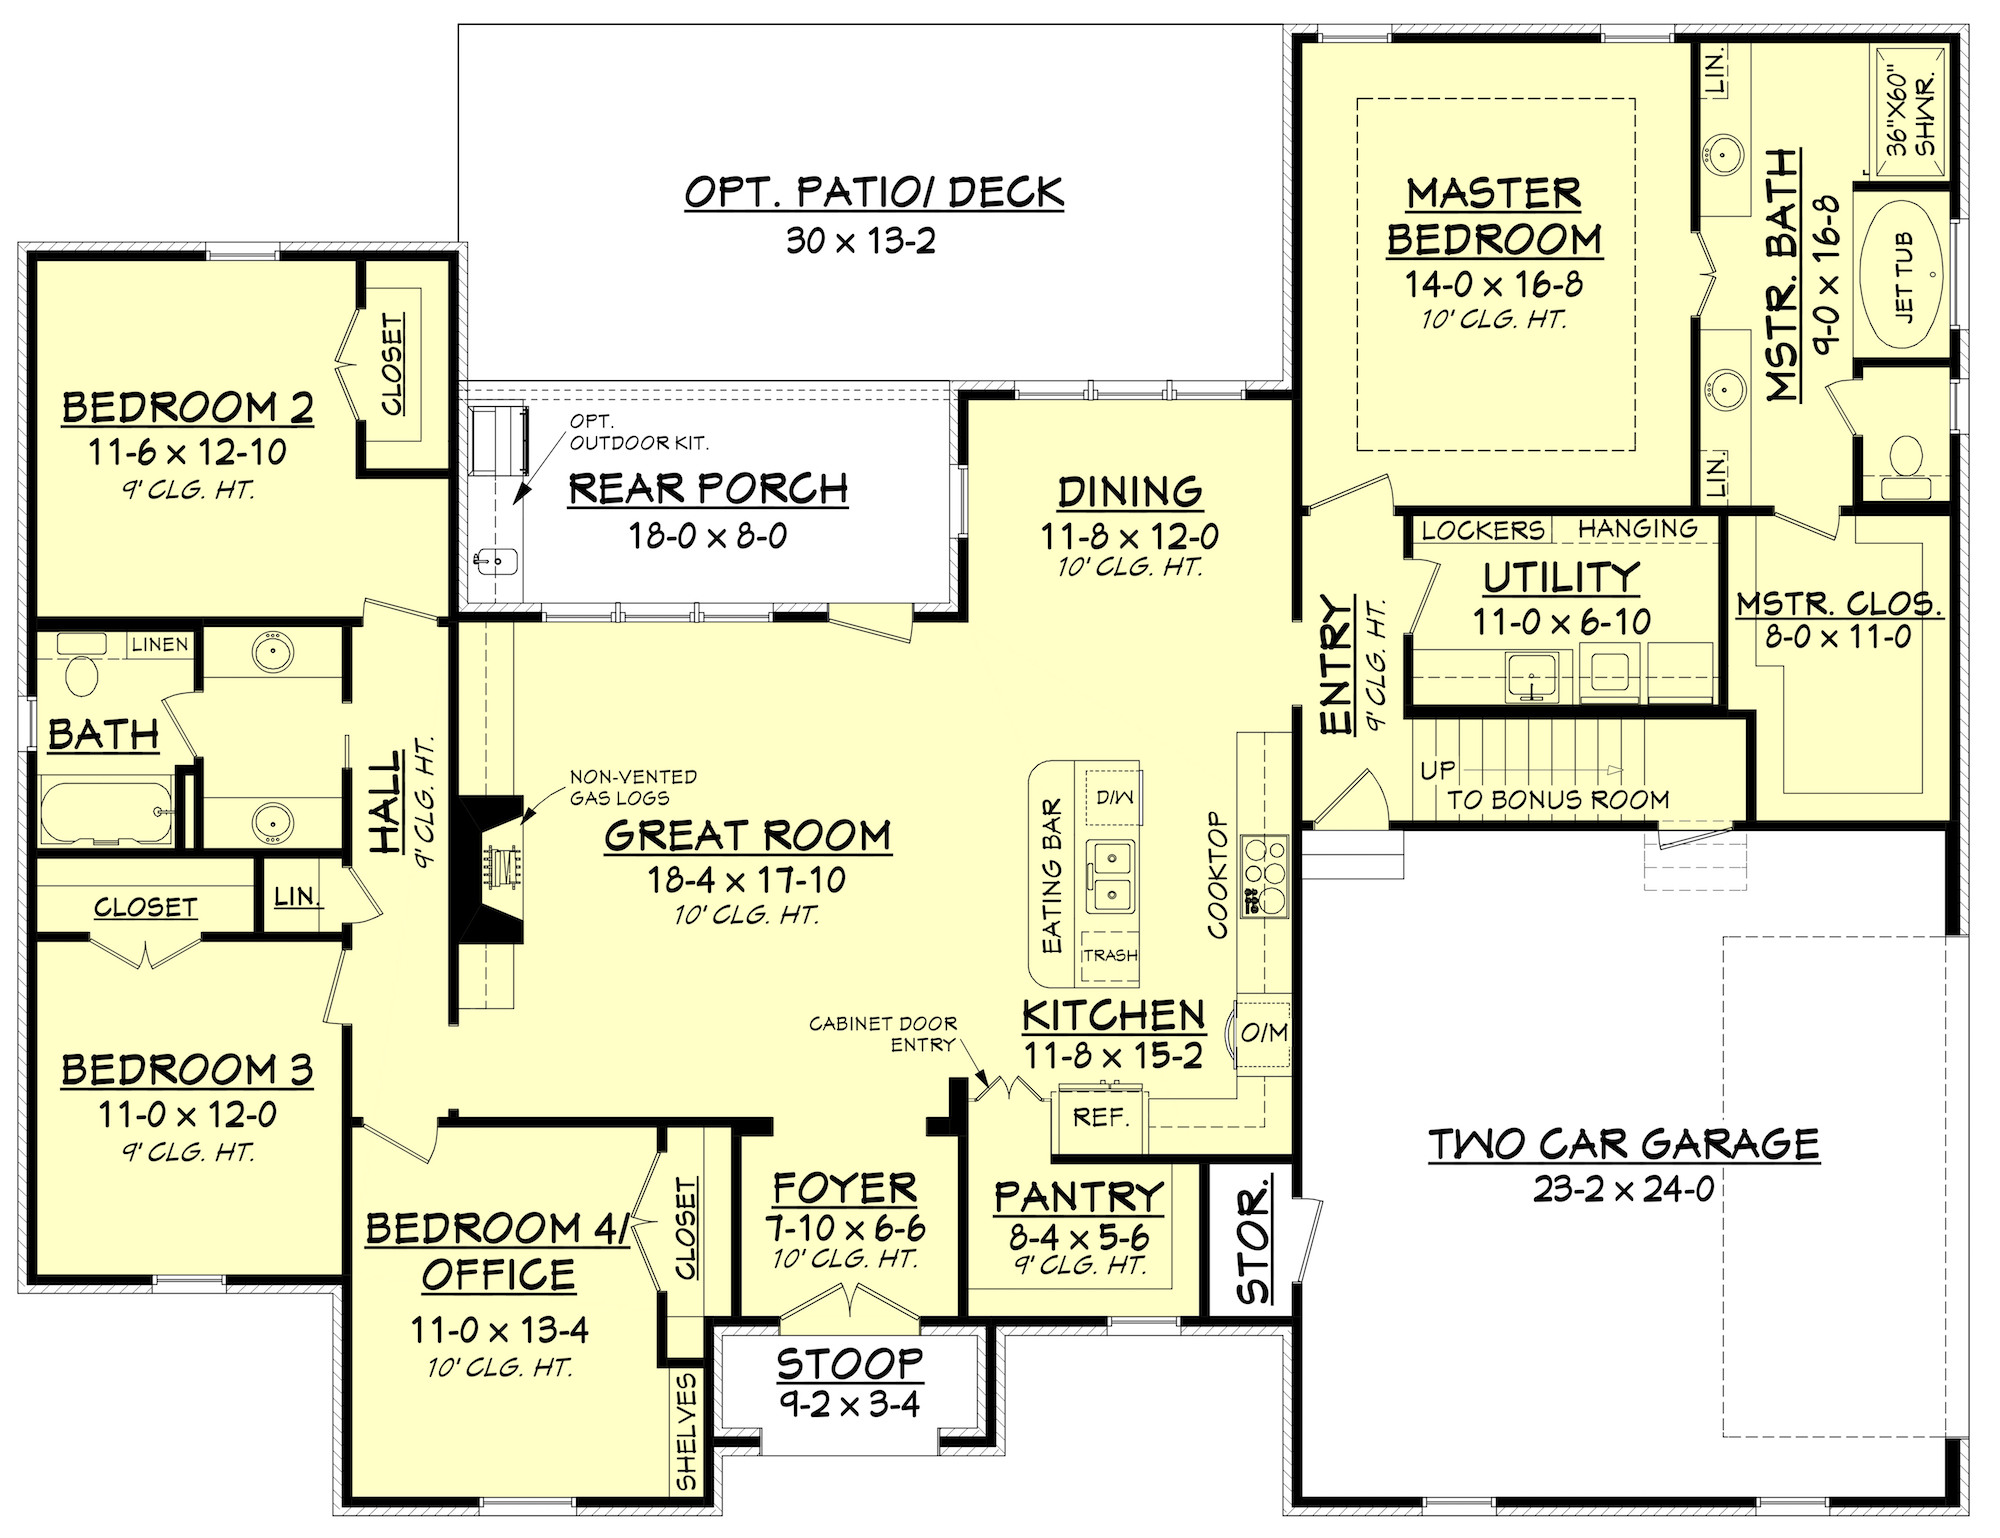 Acadian house plan 142 1154 4 bedrm 2210 sq ft home plan Plan my house